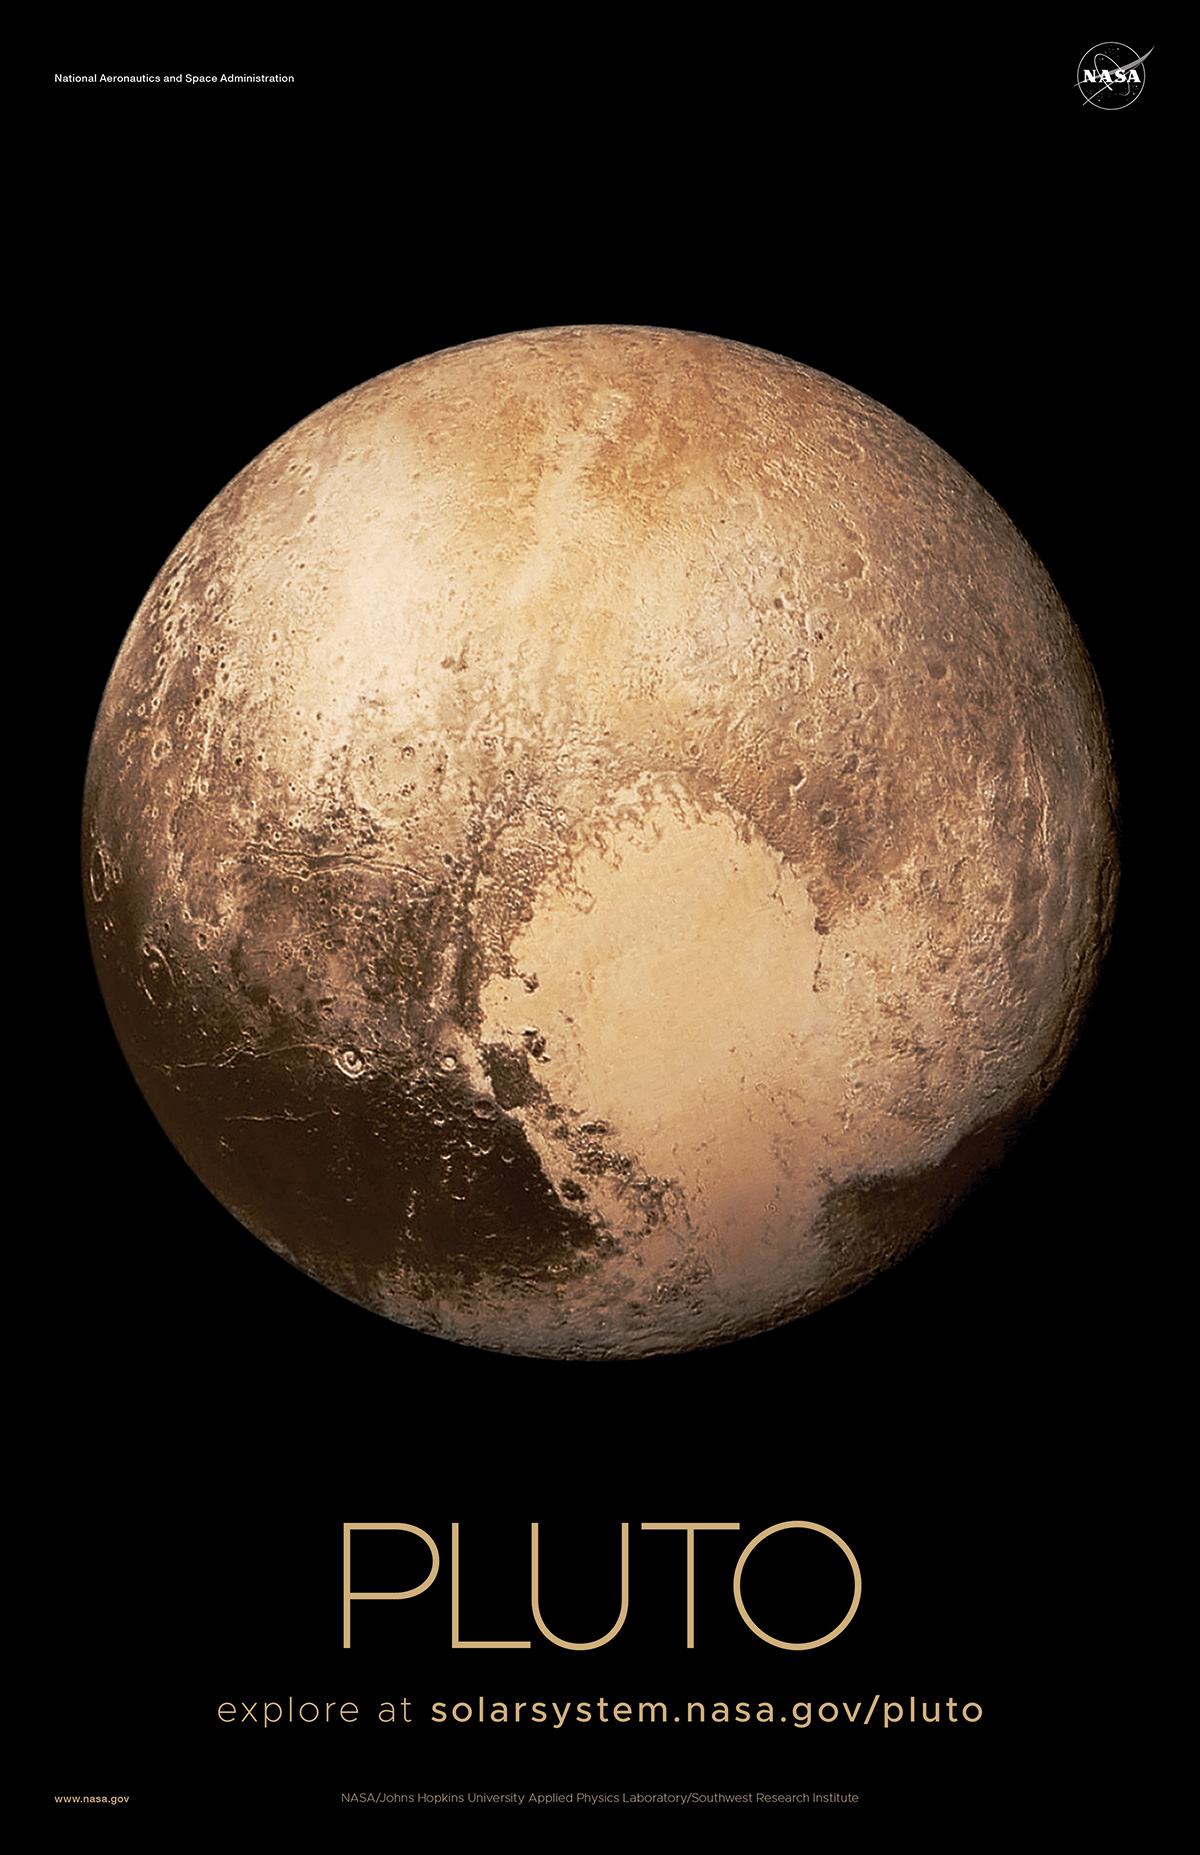 Color-enhanced view of Pluto that shows the heart-shaped region known as Sputnik Planitia.